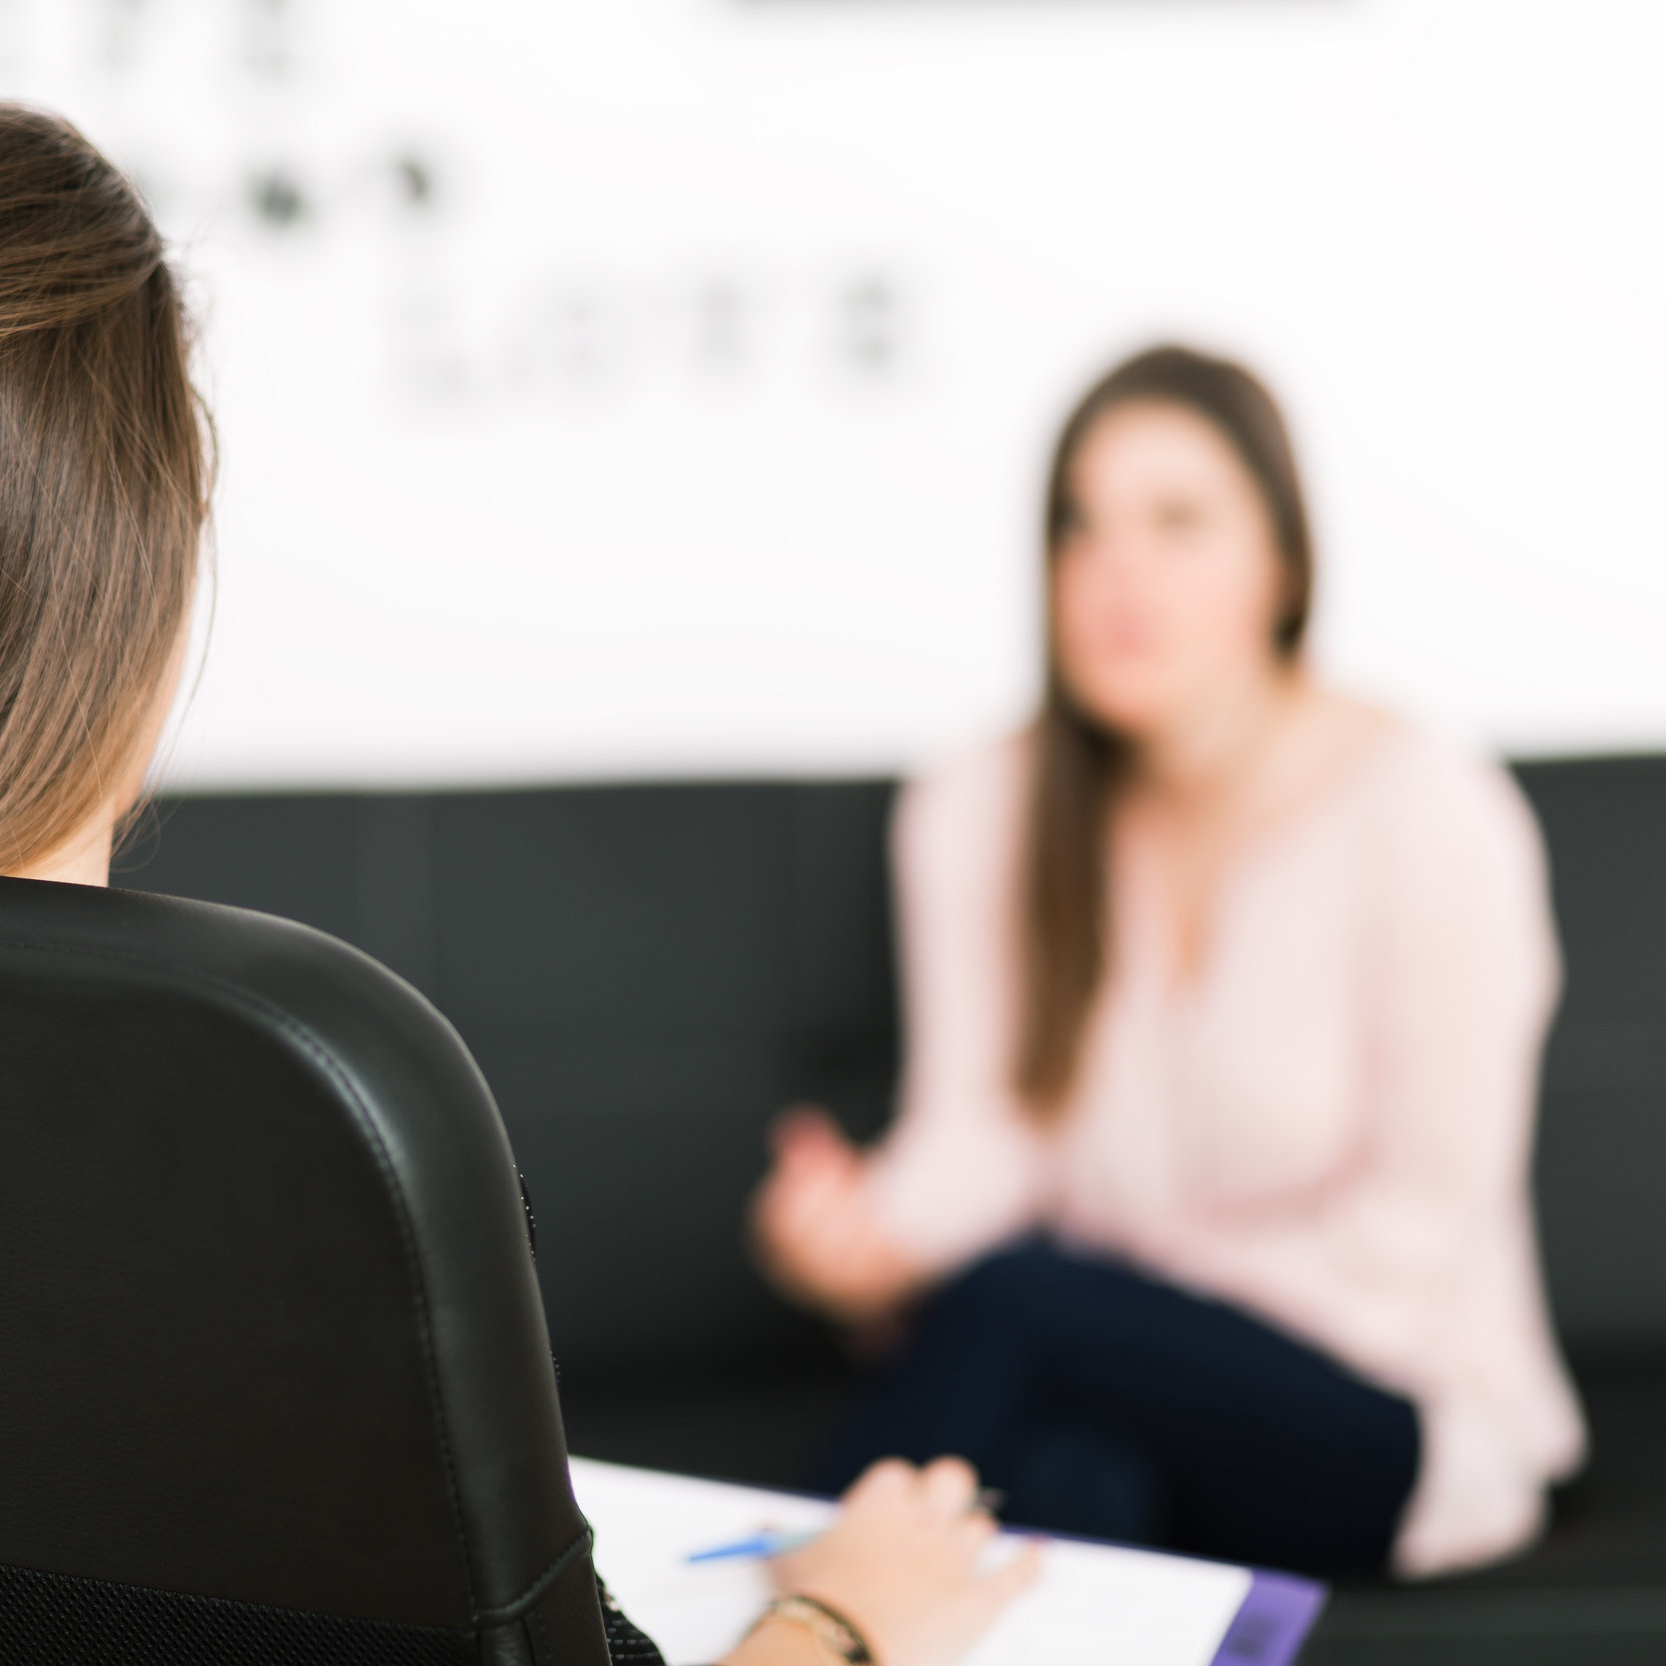 Trauma-informed therapy - We provide several free, onsite therapy services for survivors and caregivers, to support individuals in the healing process. We offer Parent-Child Interactive Therapy, Trauma Focused-Cognitive Behavior Therapy, and Cognitive Processing Therapy.Learn More about the therapy we provide